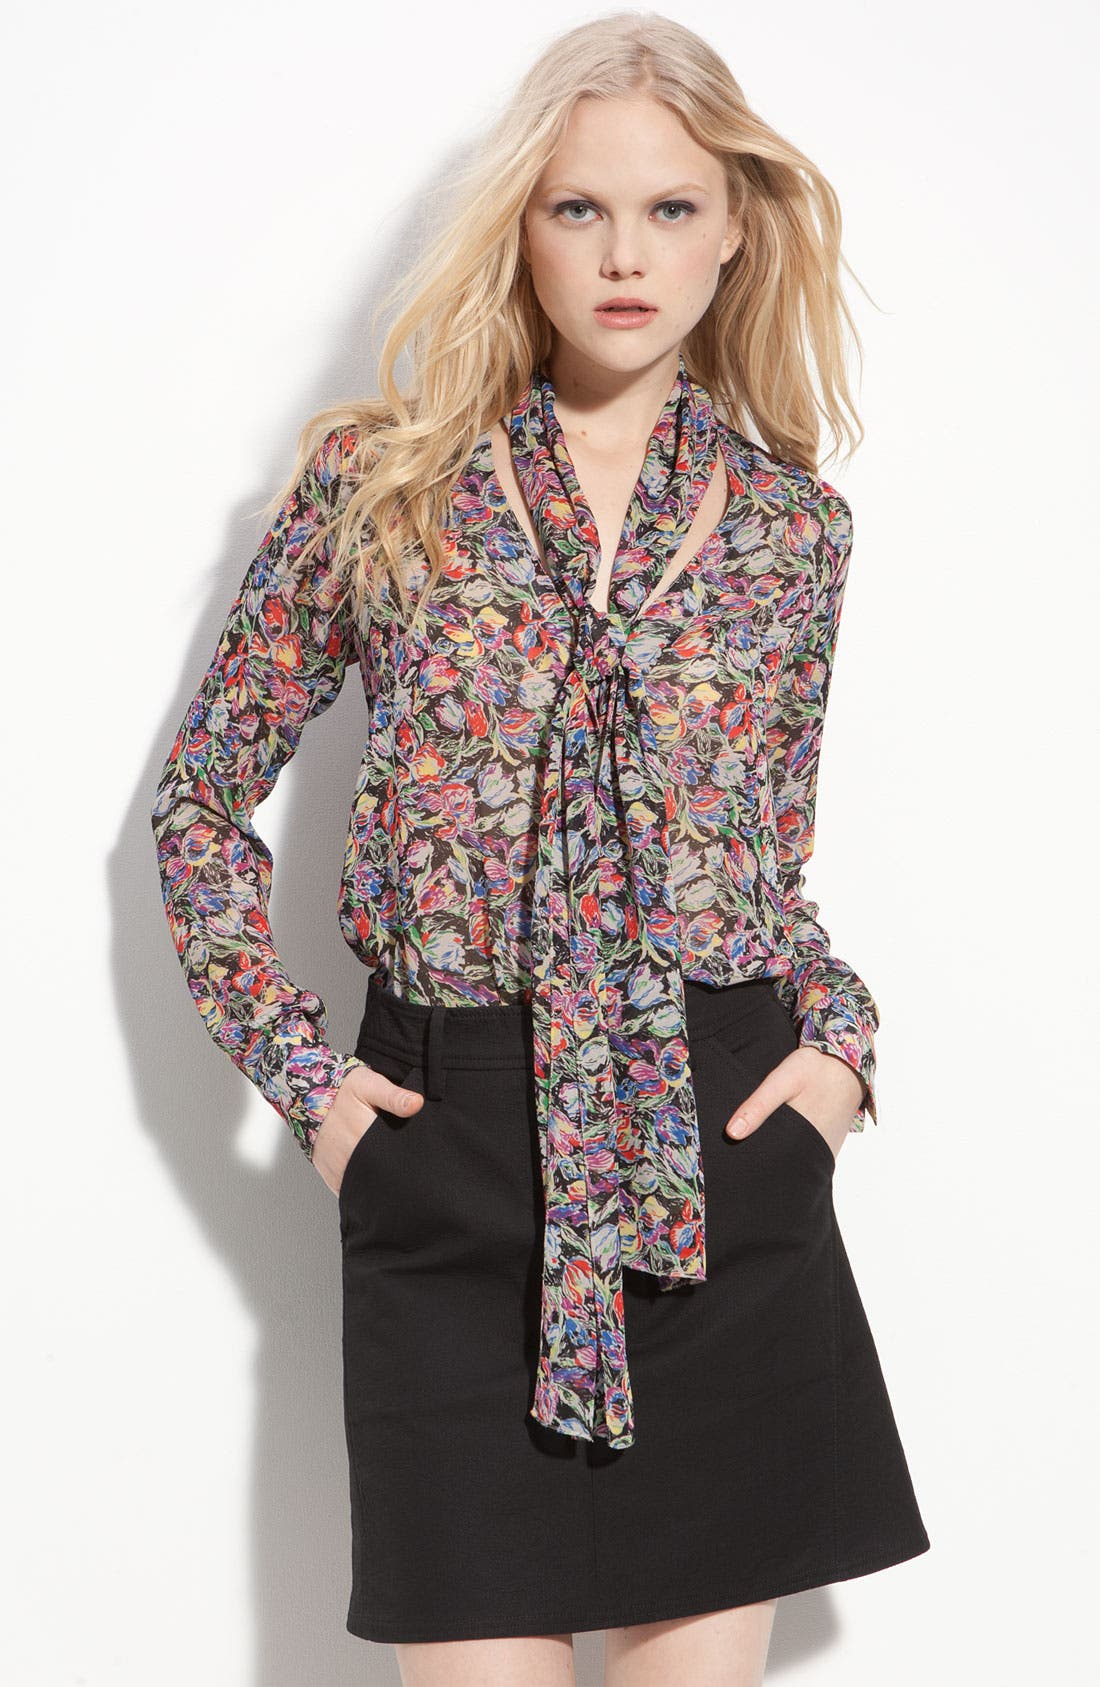 Main Image - Derek Lam 10 Crosby Sheer Floral Tie Neck Blouse